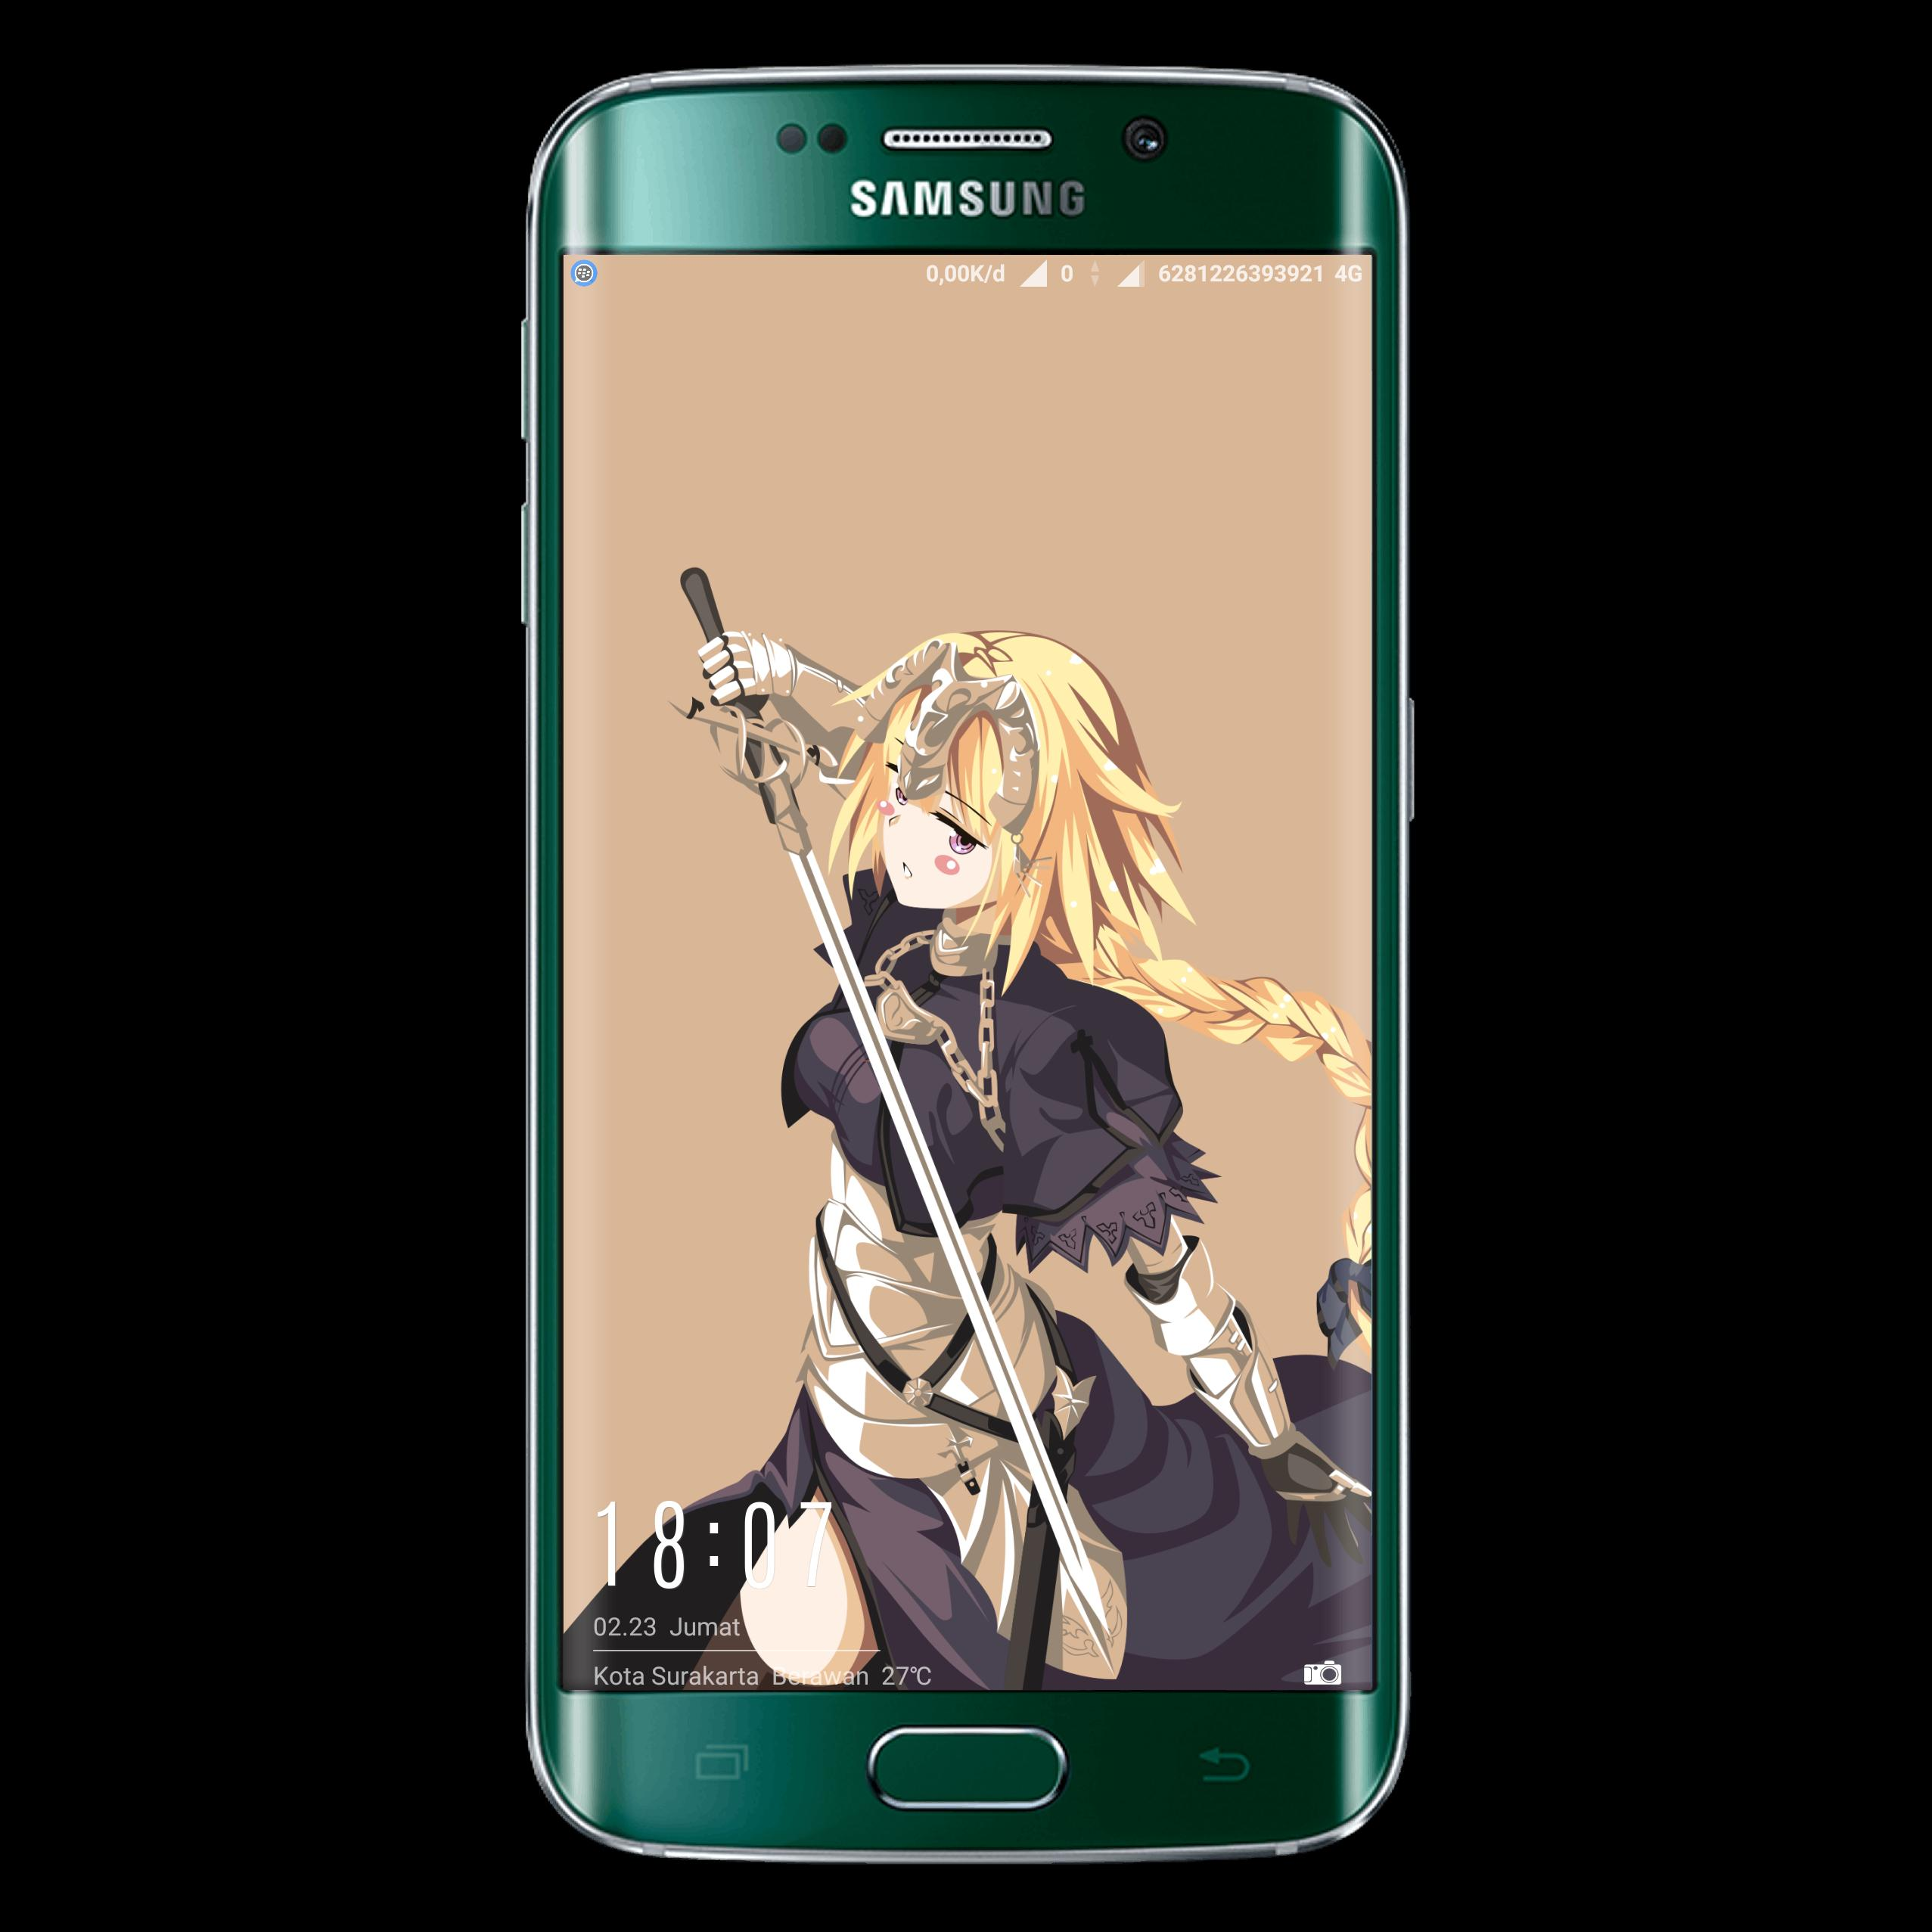 Fate Apocrypha Wallpaper For Android Apk Download